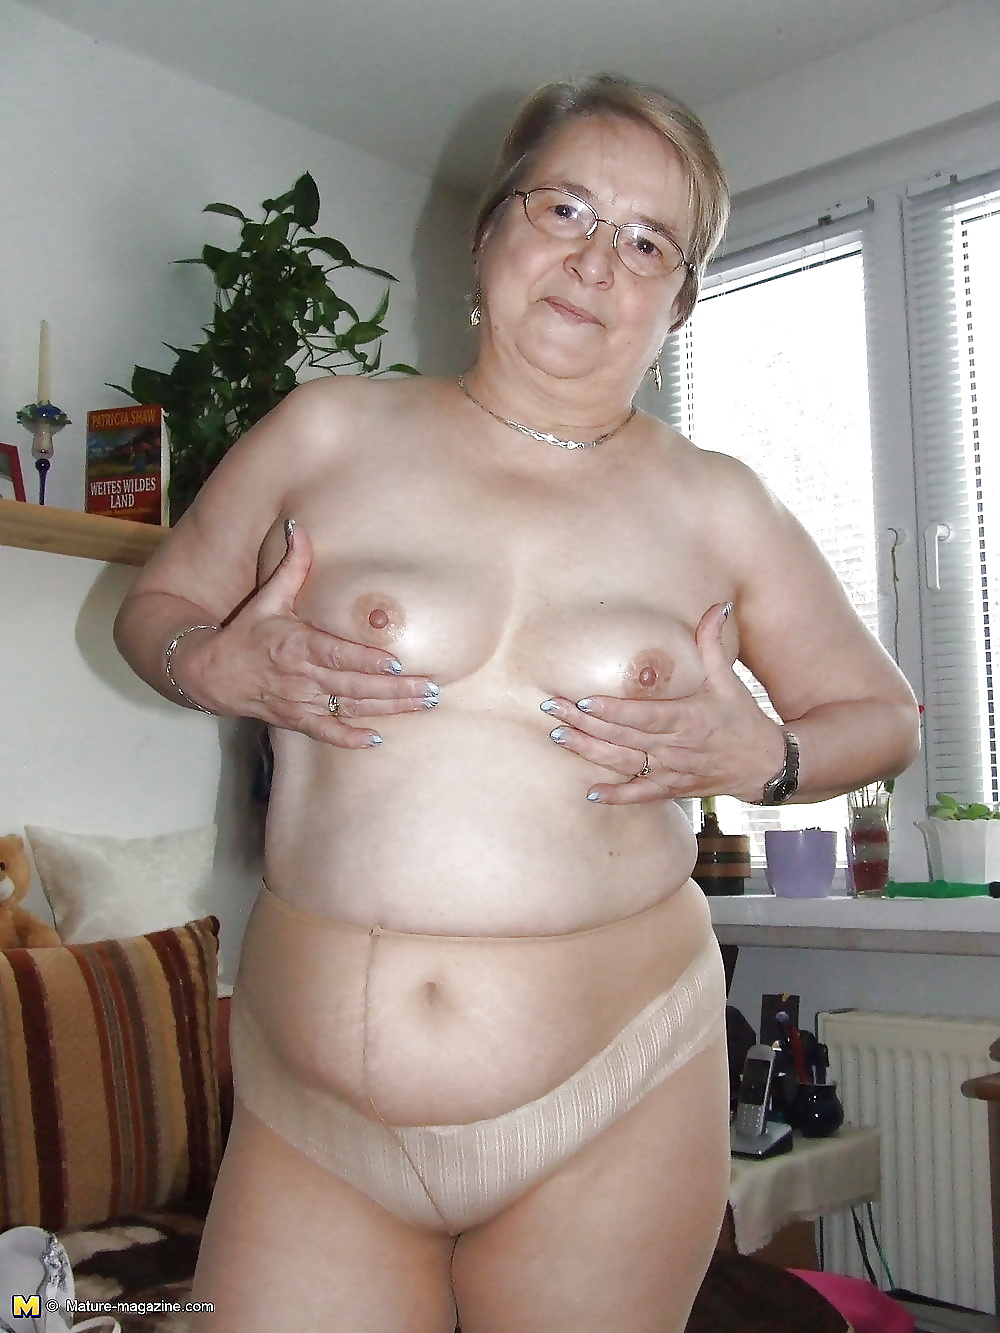 Pantyhose Mature Fat Bbw Amateur Granny Stocking Panties -7972